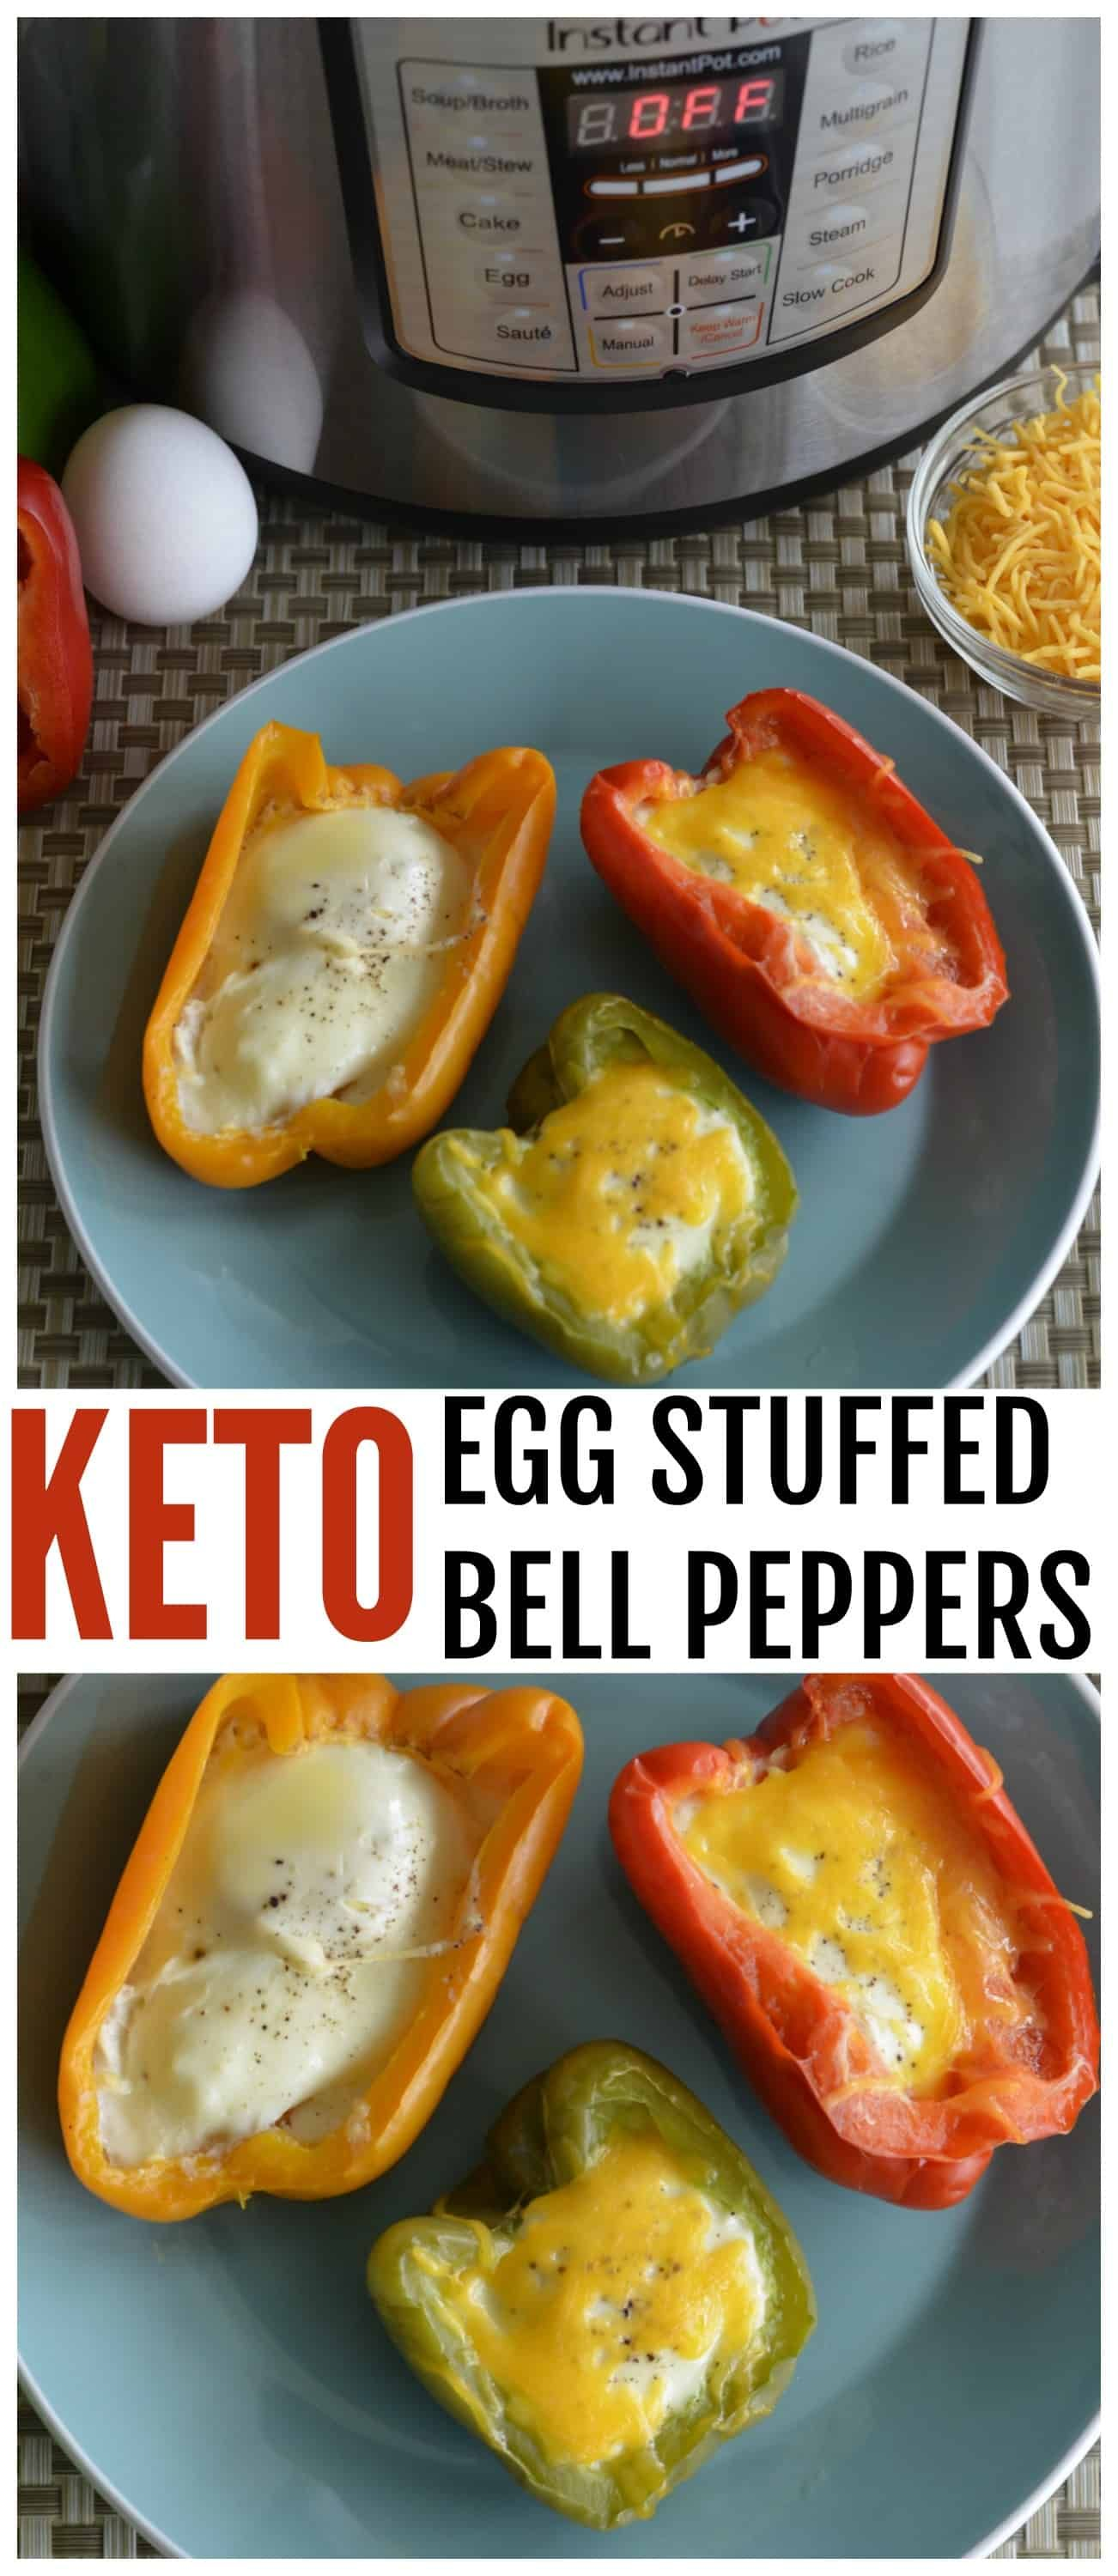 Instant Pot Low Carb Egg Stuffed Bell Peppers Stuffed Peppers Stuffed Bell Peppers Brunch Recipes